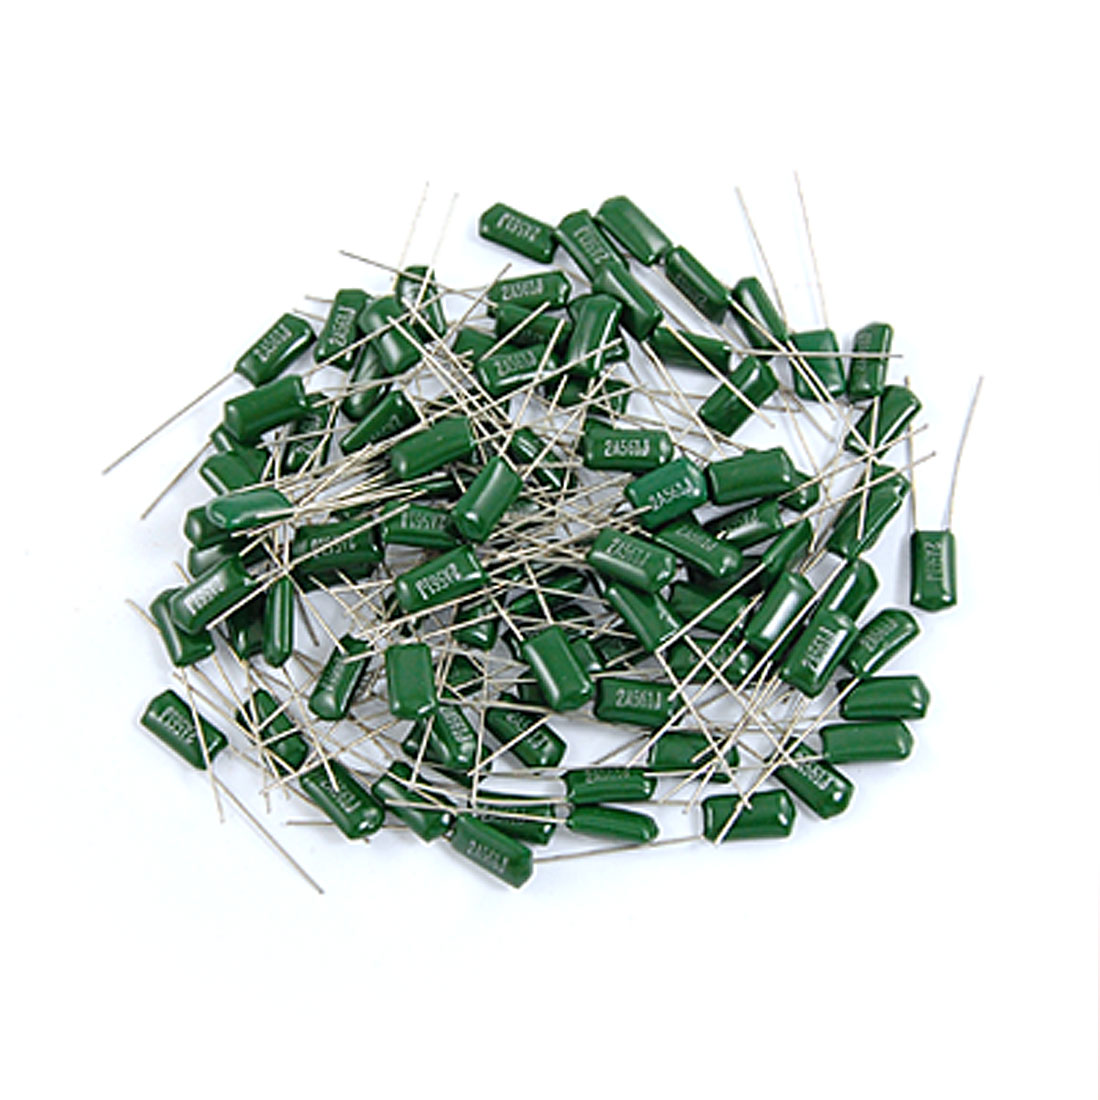 100 Pcs 2200pF 0.0022uF 100V 5% Mylar Polyester Film Capacitors